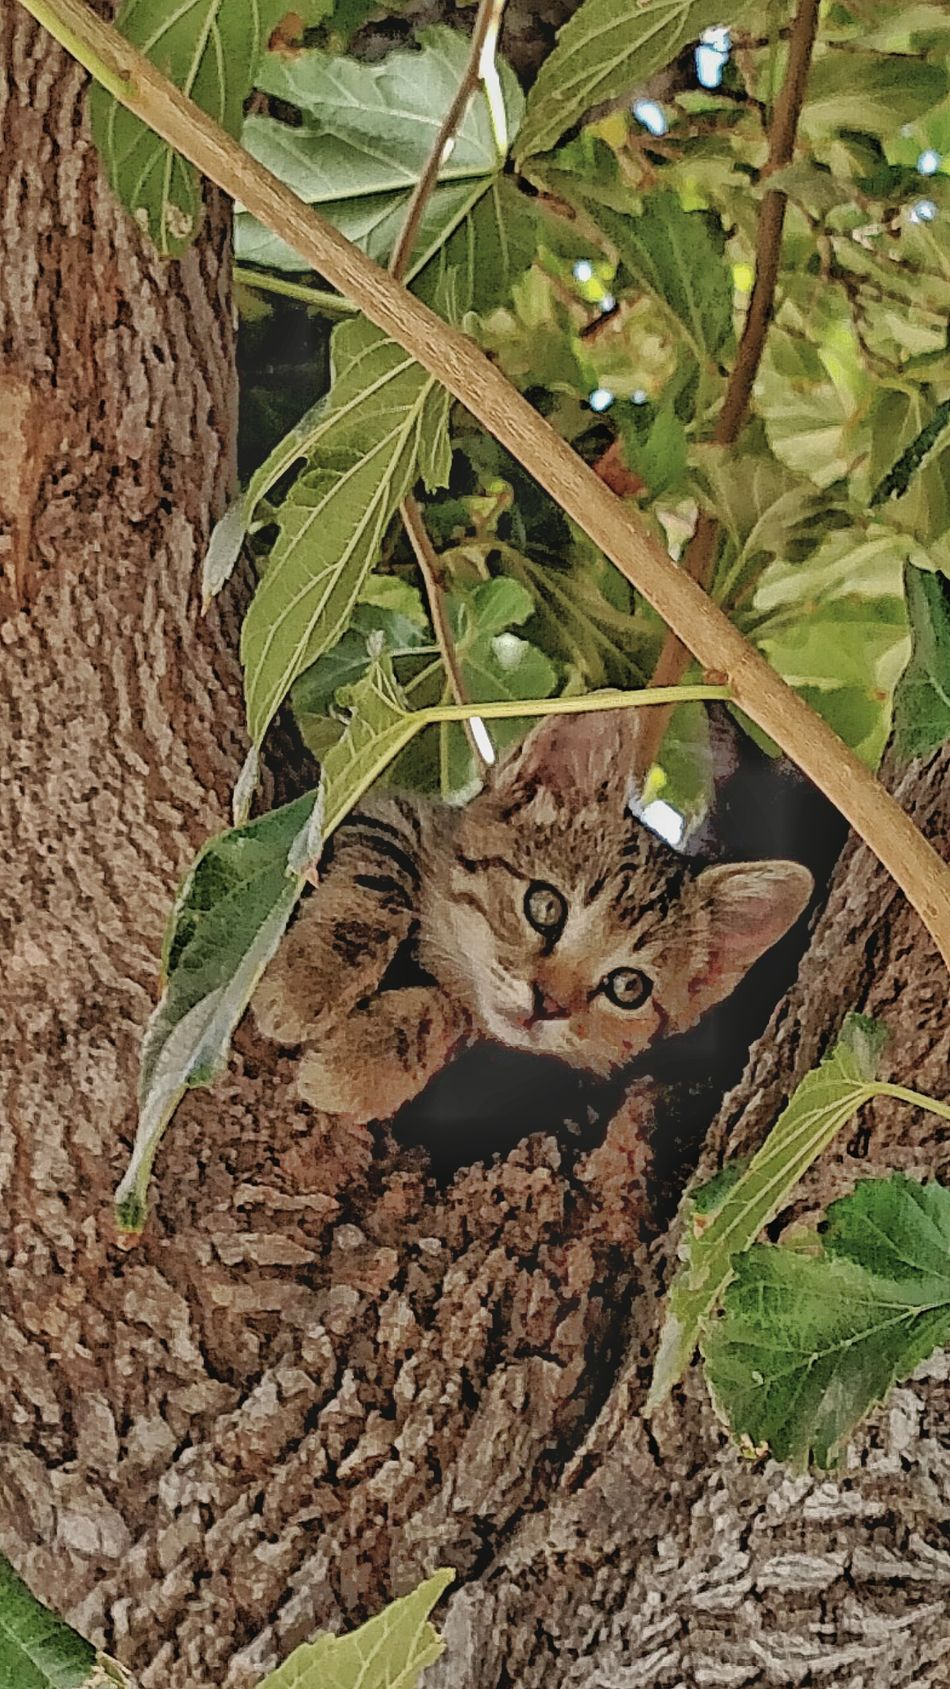 Animals Kittenlife Treetastic Lovecats Miss Copperkitten Colour Of Life Cats And Dogs Country Life Outdoors Beauty In Nature Pure Love Eyeemphoto Relaxation Outdoors Nature Duncan, Arizona, United States Feline Close-up Animal Themes Domestic Animals Resting